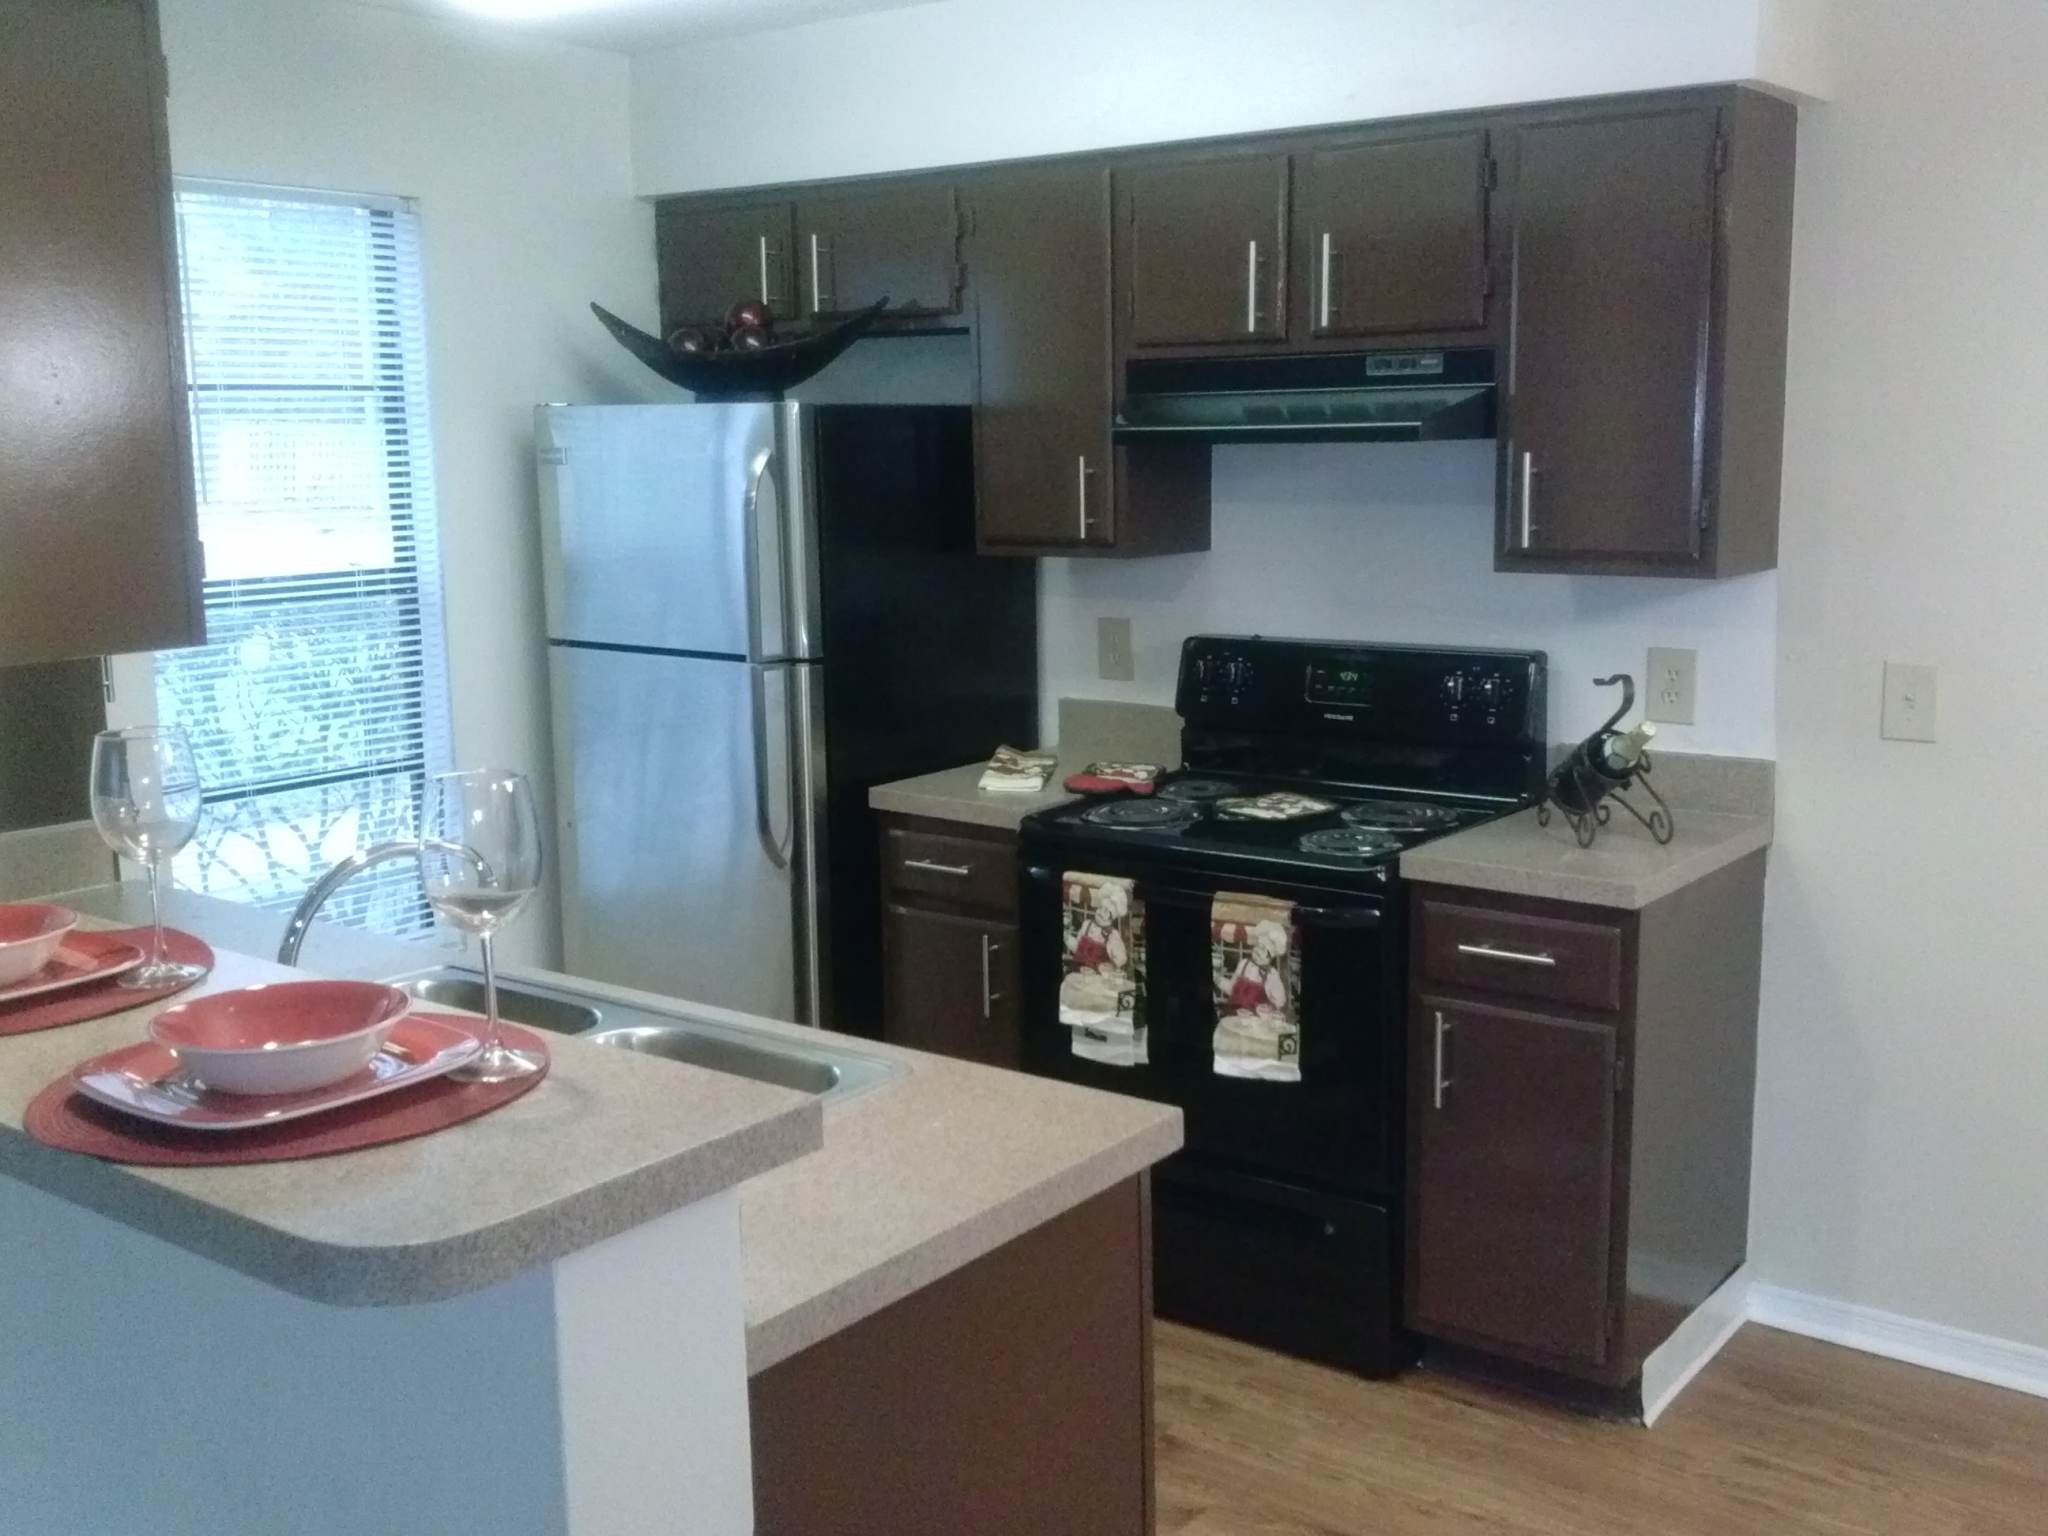 Deerfield Apartments upgraded kitchen with espresso cabinetry and new appliances